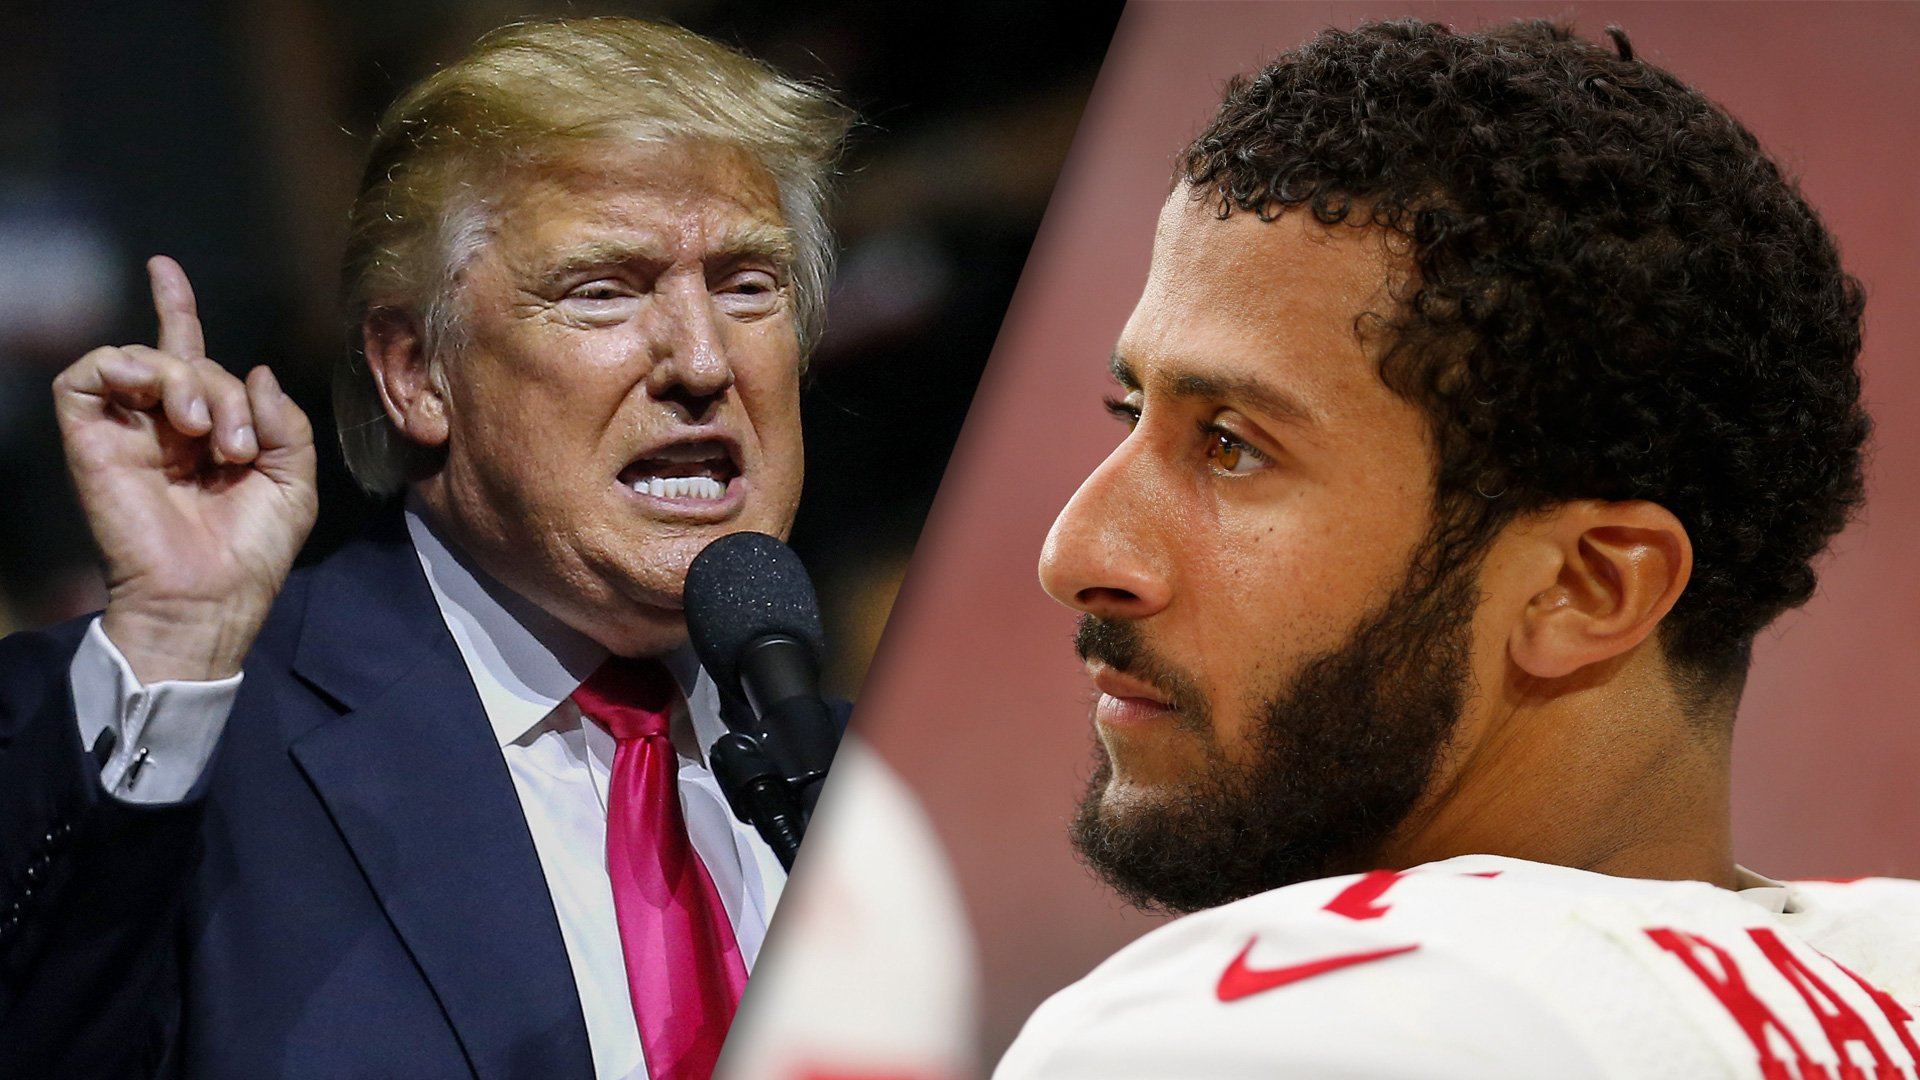 Trump's response to the NFL taking a knee is a sleight of hand